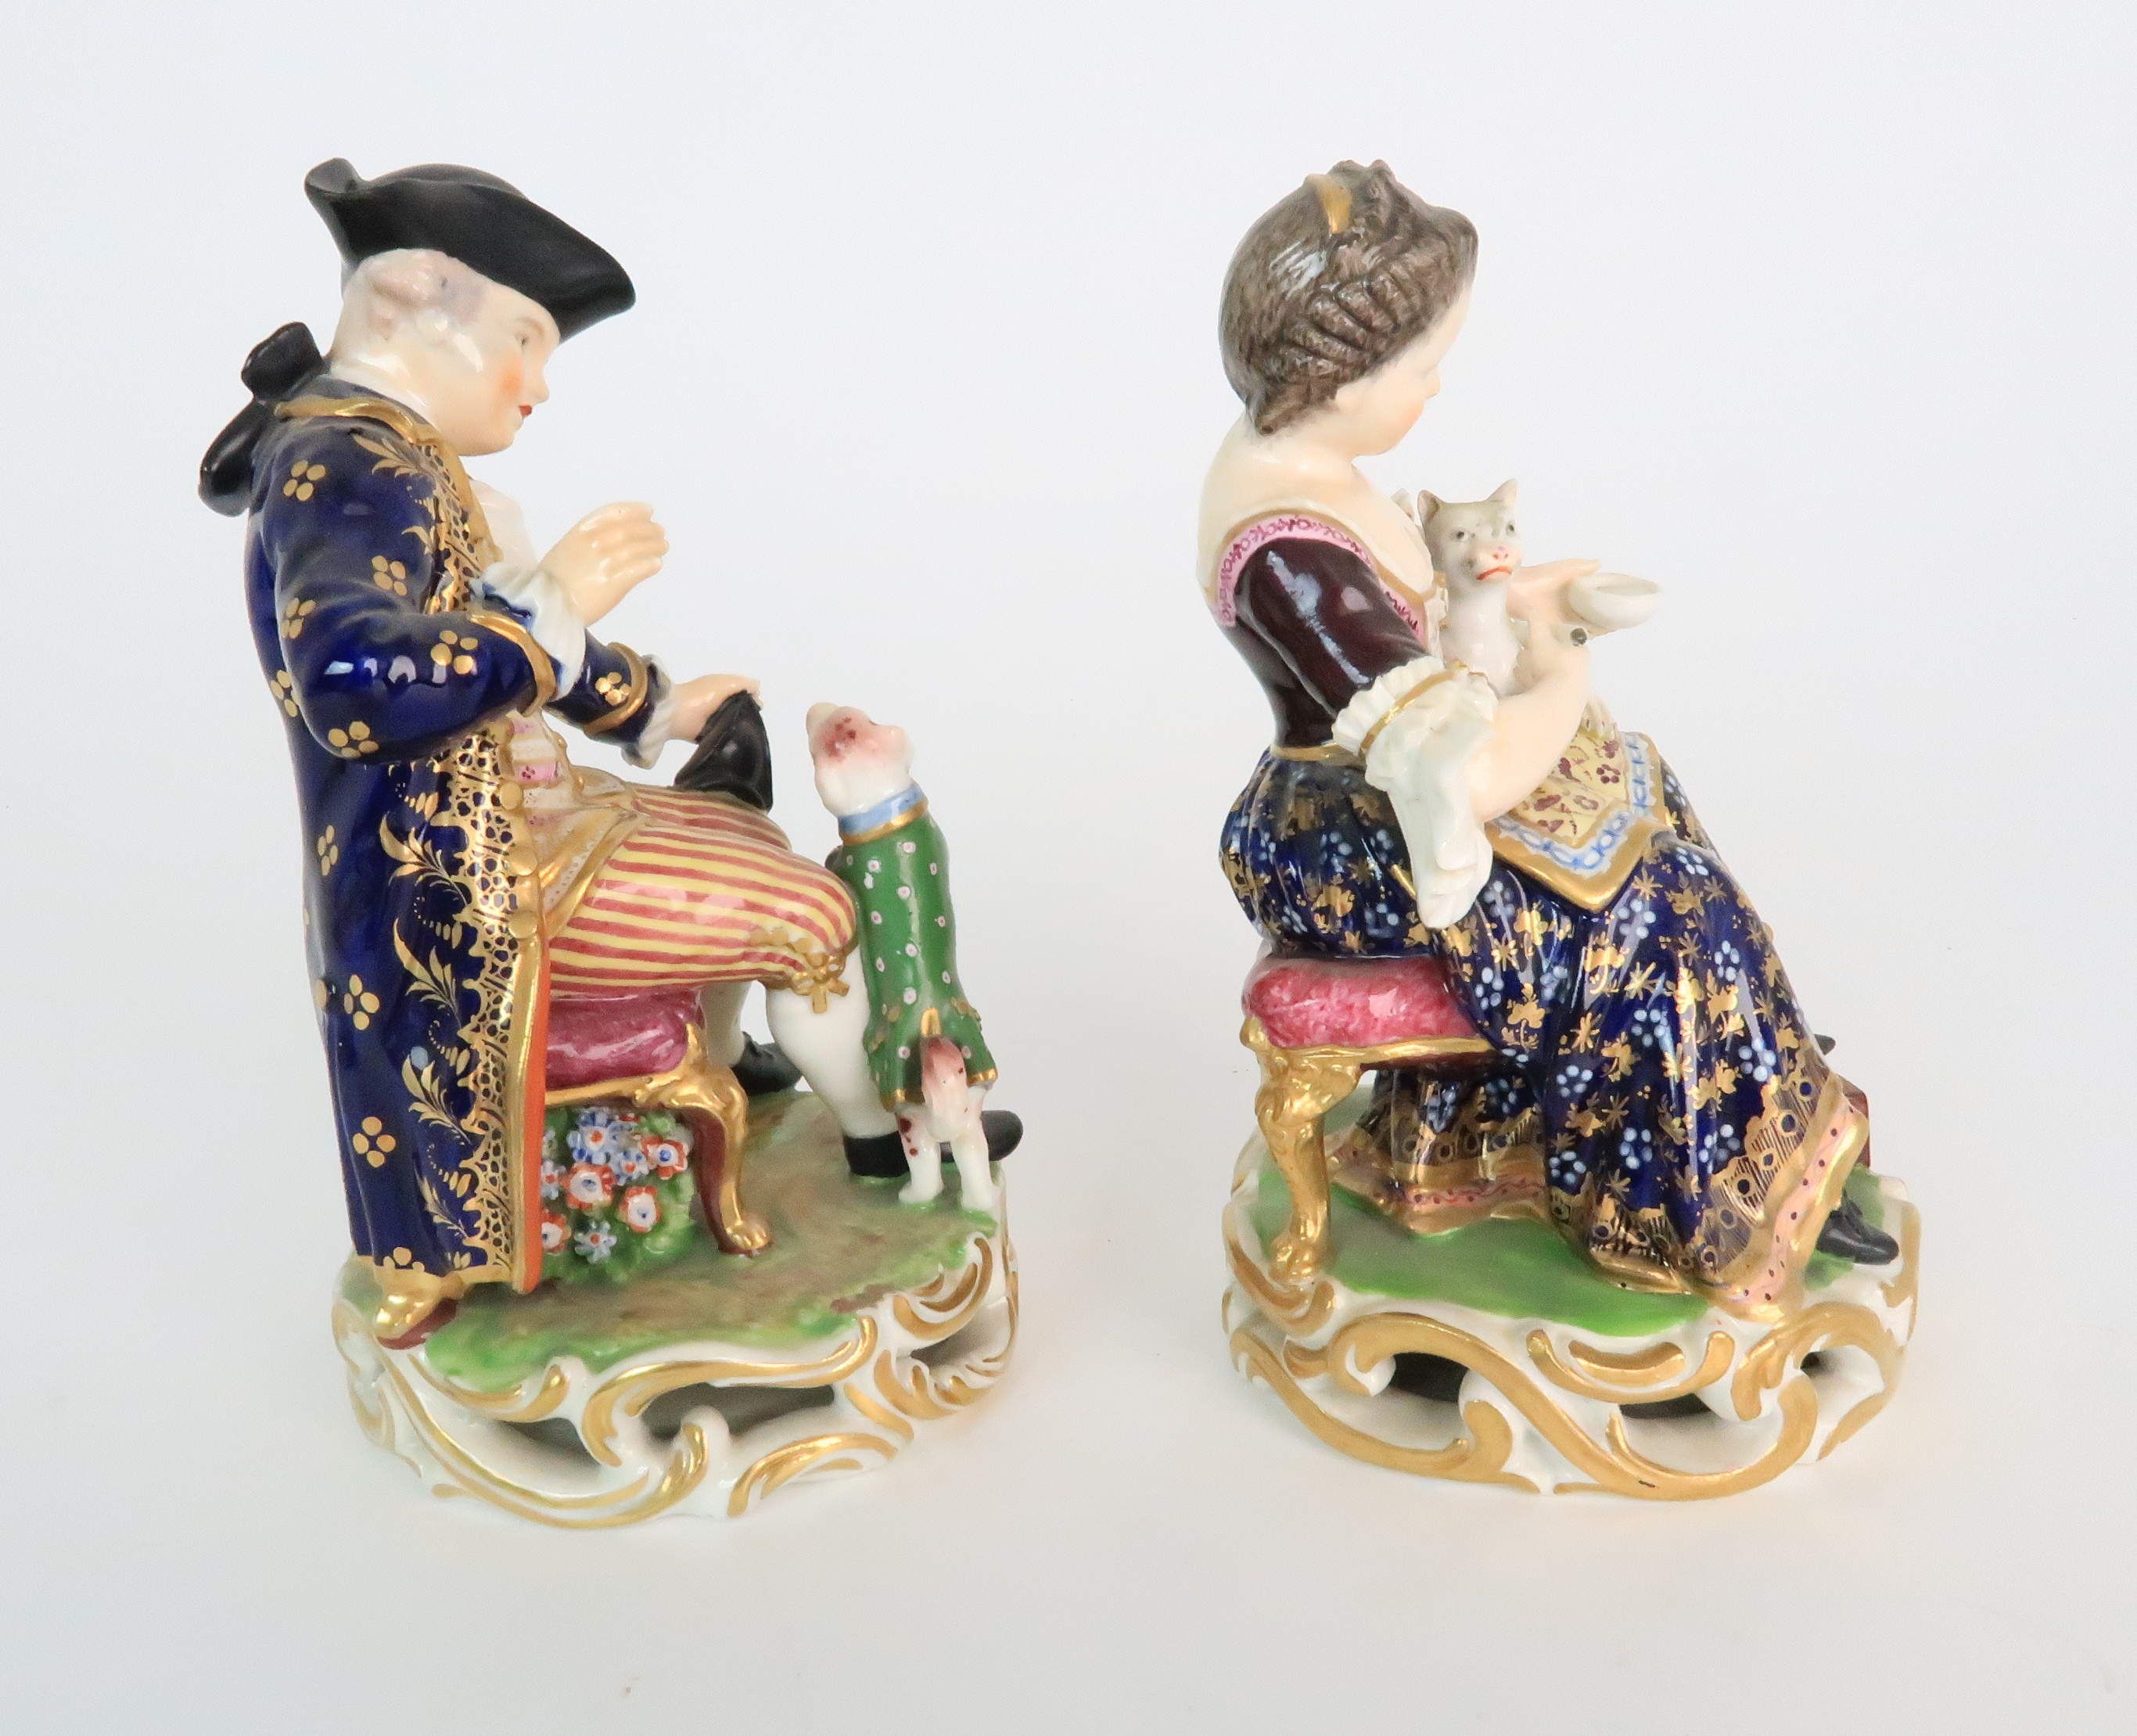 A PAIR OF DERBY PORCELAIN FIGURES early 19th century, modelled as a seated boy playing with a dog - Image 4 of 12